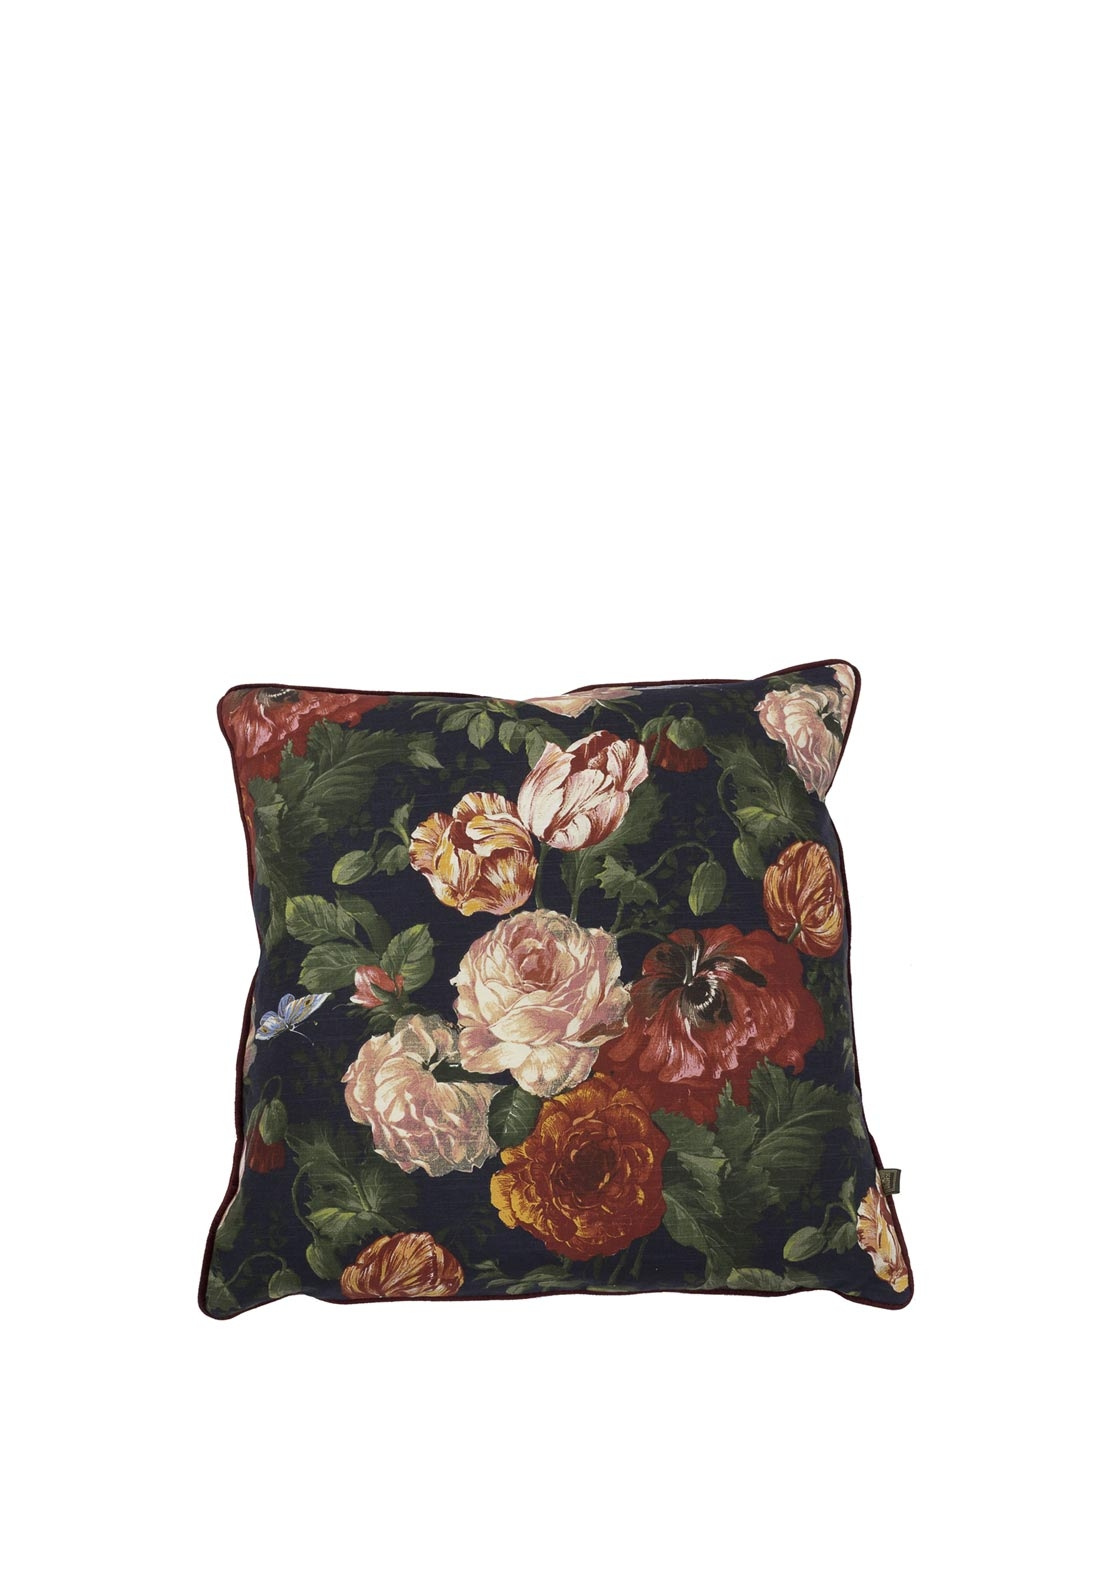 Scatterbox Vermeer Floral Feather Filled Cushion, 45cm x 45cm Navy